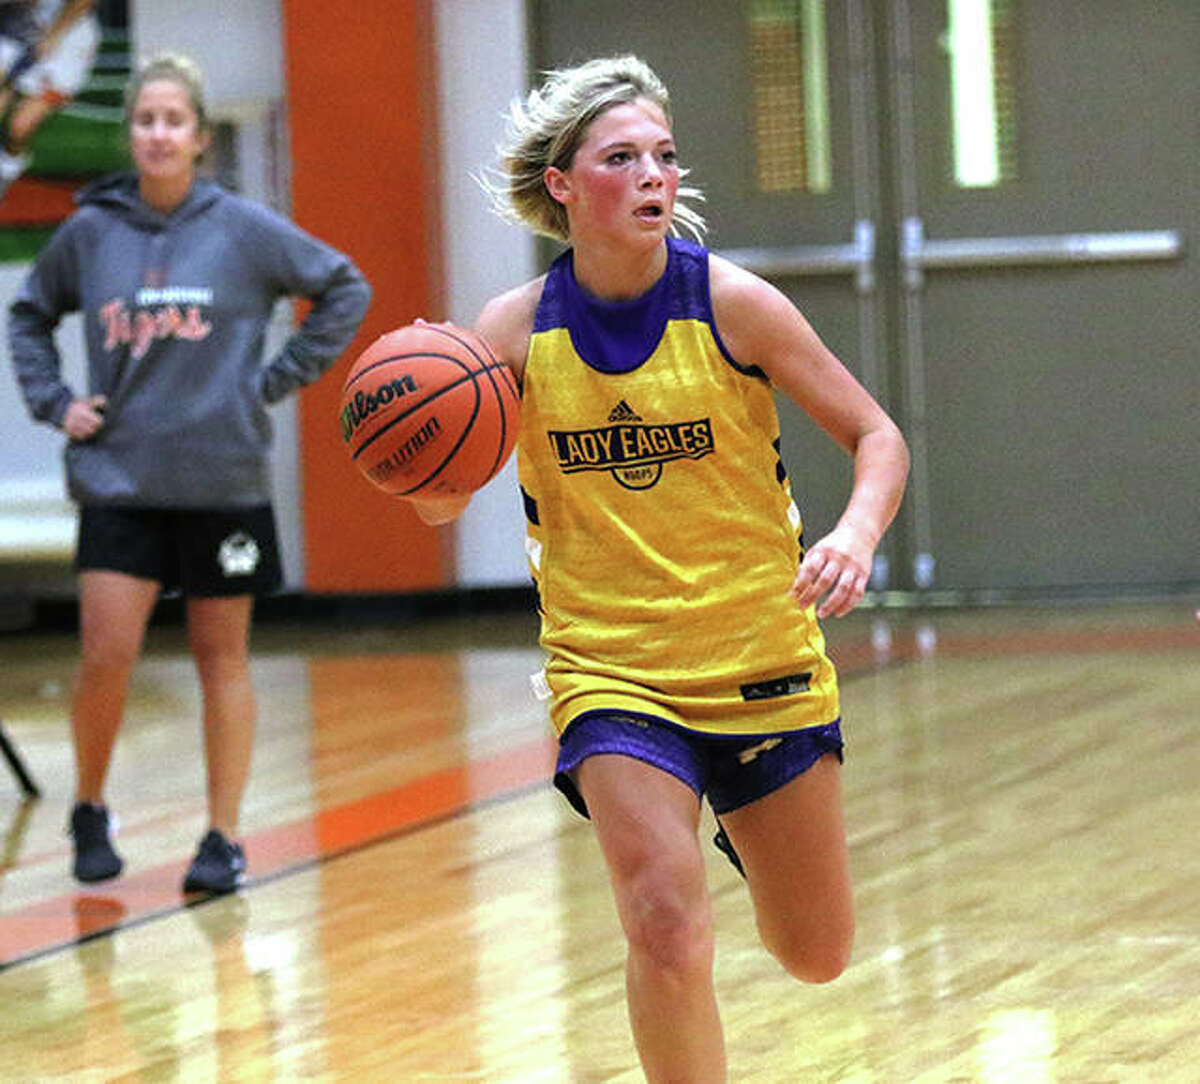 CM senior Kelbie Zupan pushes the ball upcourt while Edwardsville coach Caty Happe (left) watches from her team's bench during a June 29 summer game in Edwardsville.